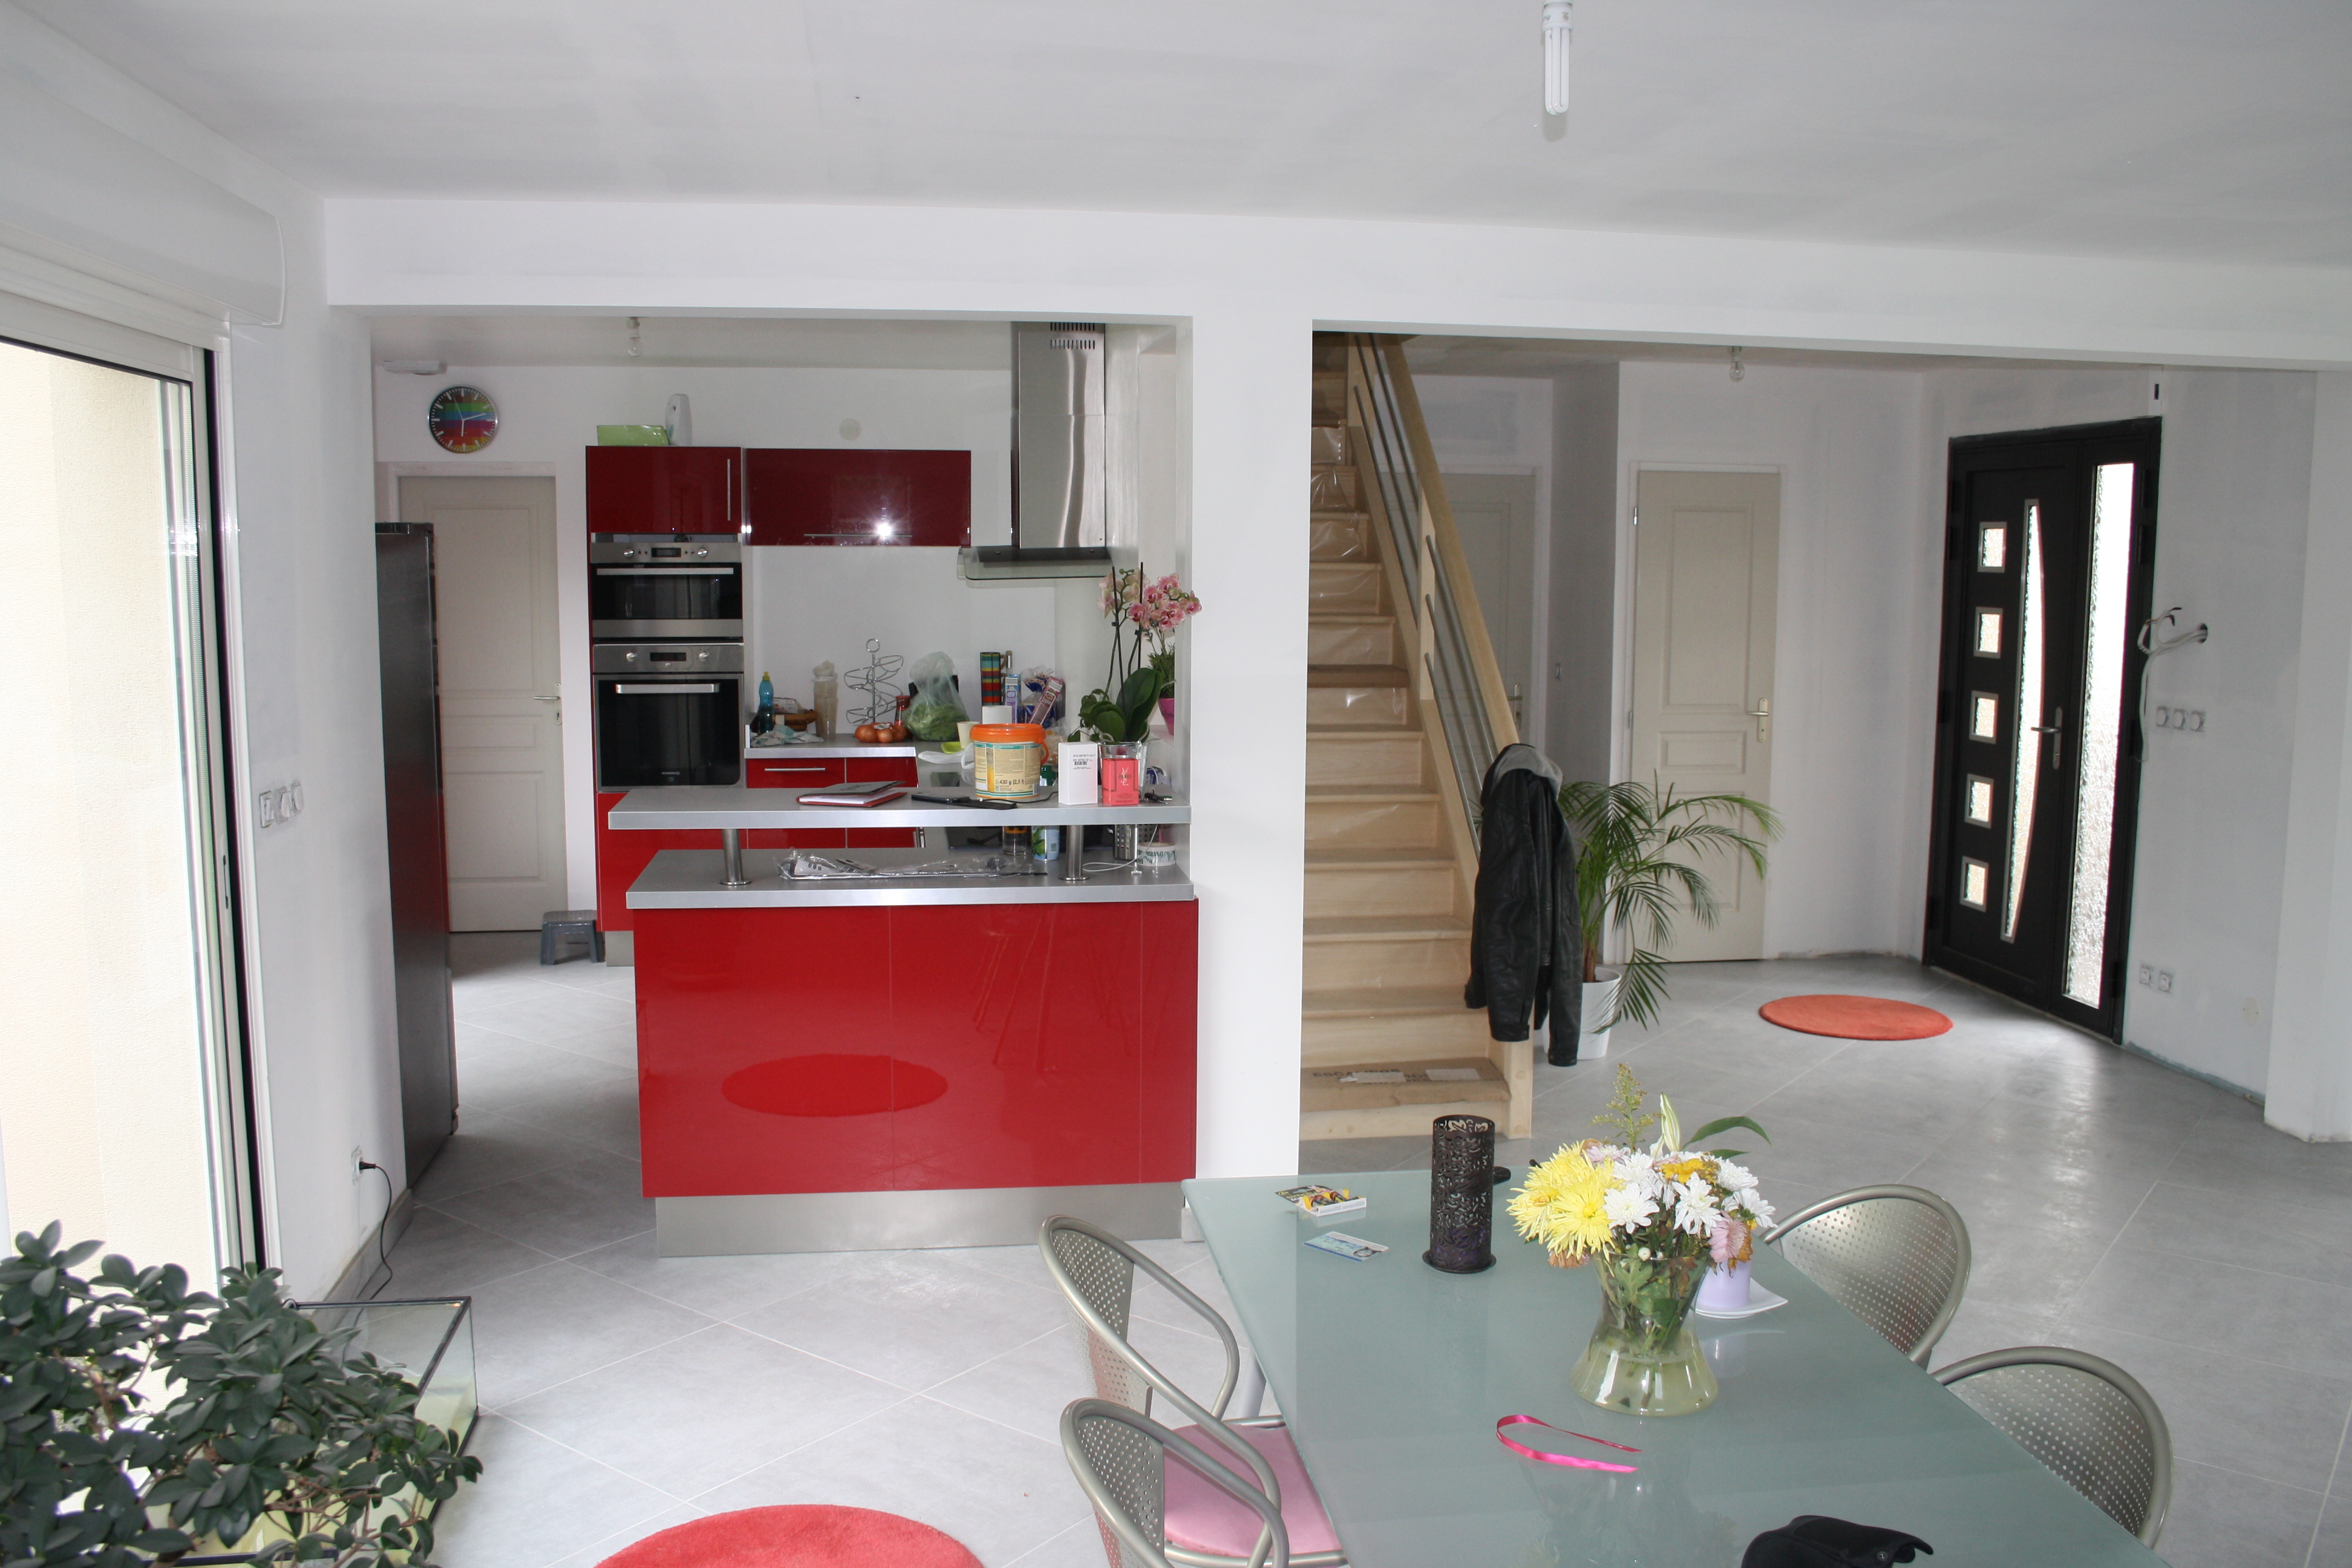 T moignage ldt amiens construction maison contemporaine for Photo interieur design